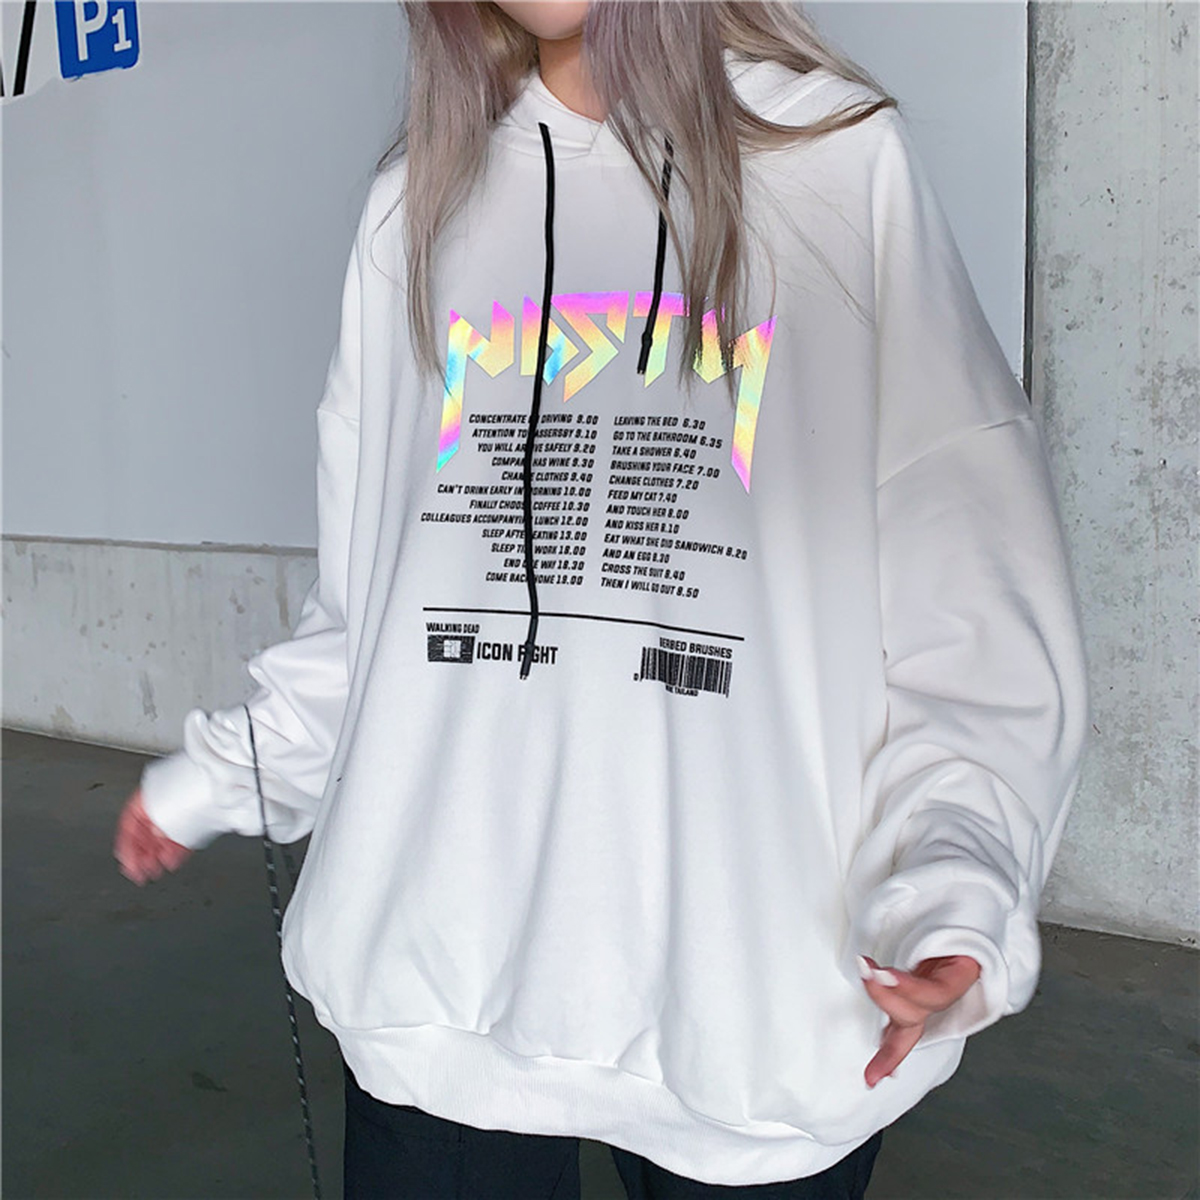 Reflective Letter Print Sweatshirt Hoodies 2019 Autumn Winter Korean Casual Pullover Cotton Thick Oversized Hoodie Streetwear